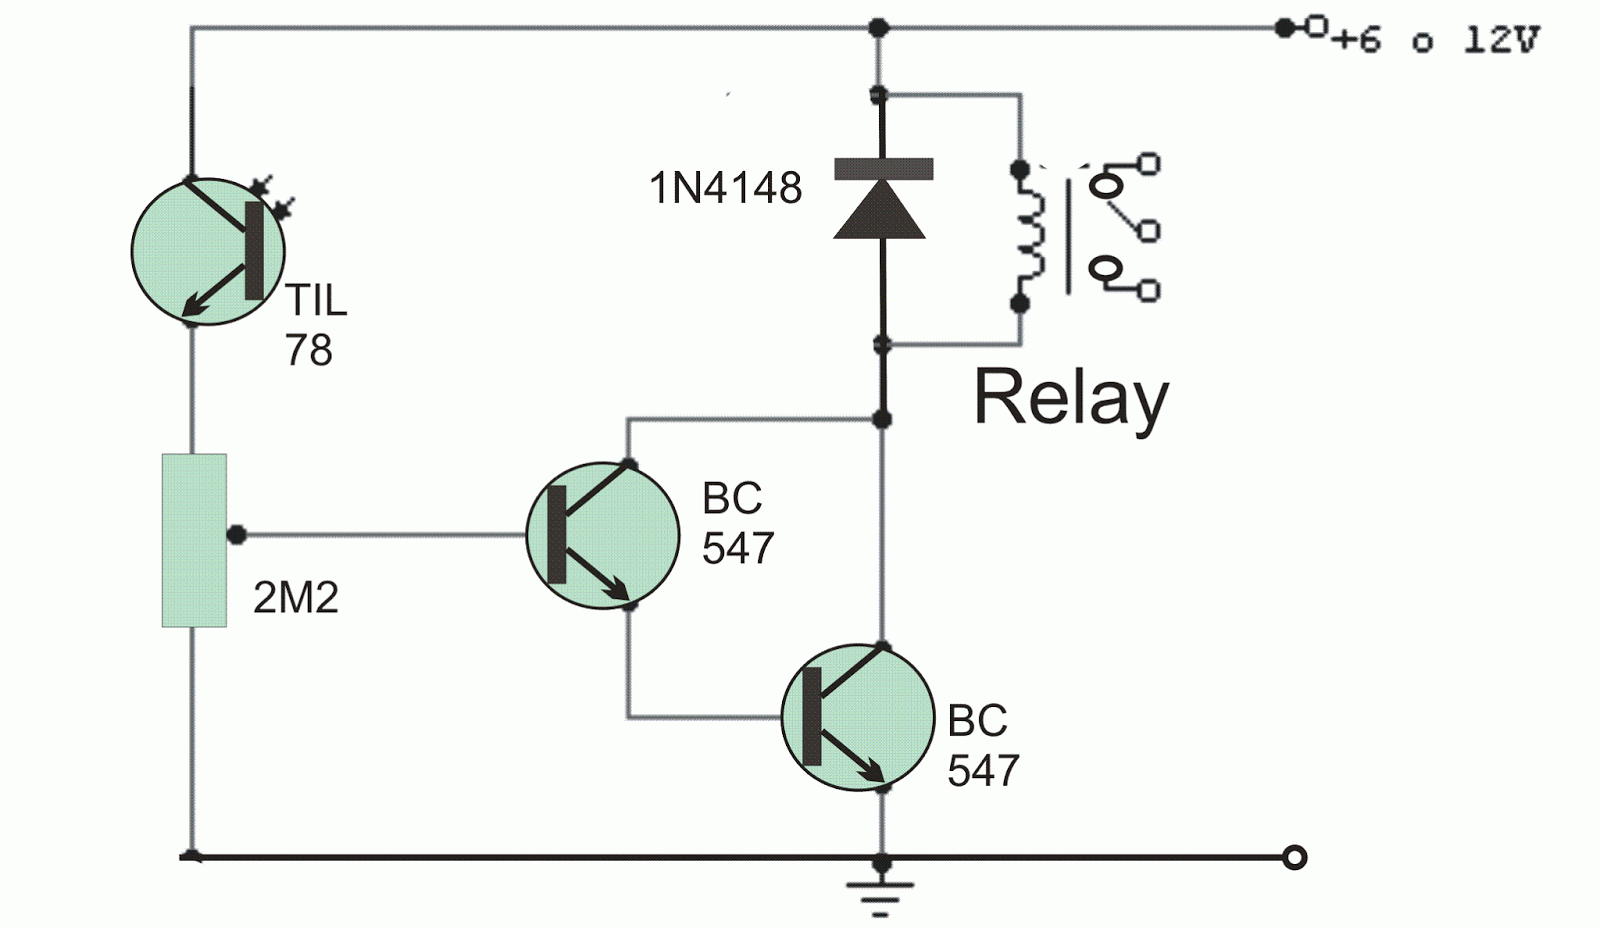 Light Operated Relay Circuit